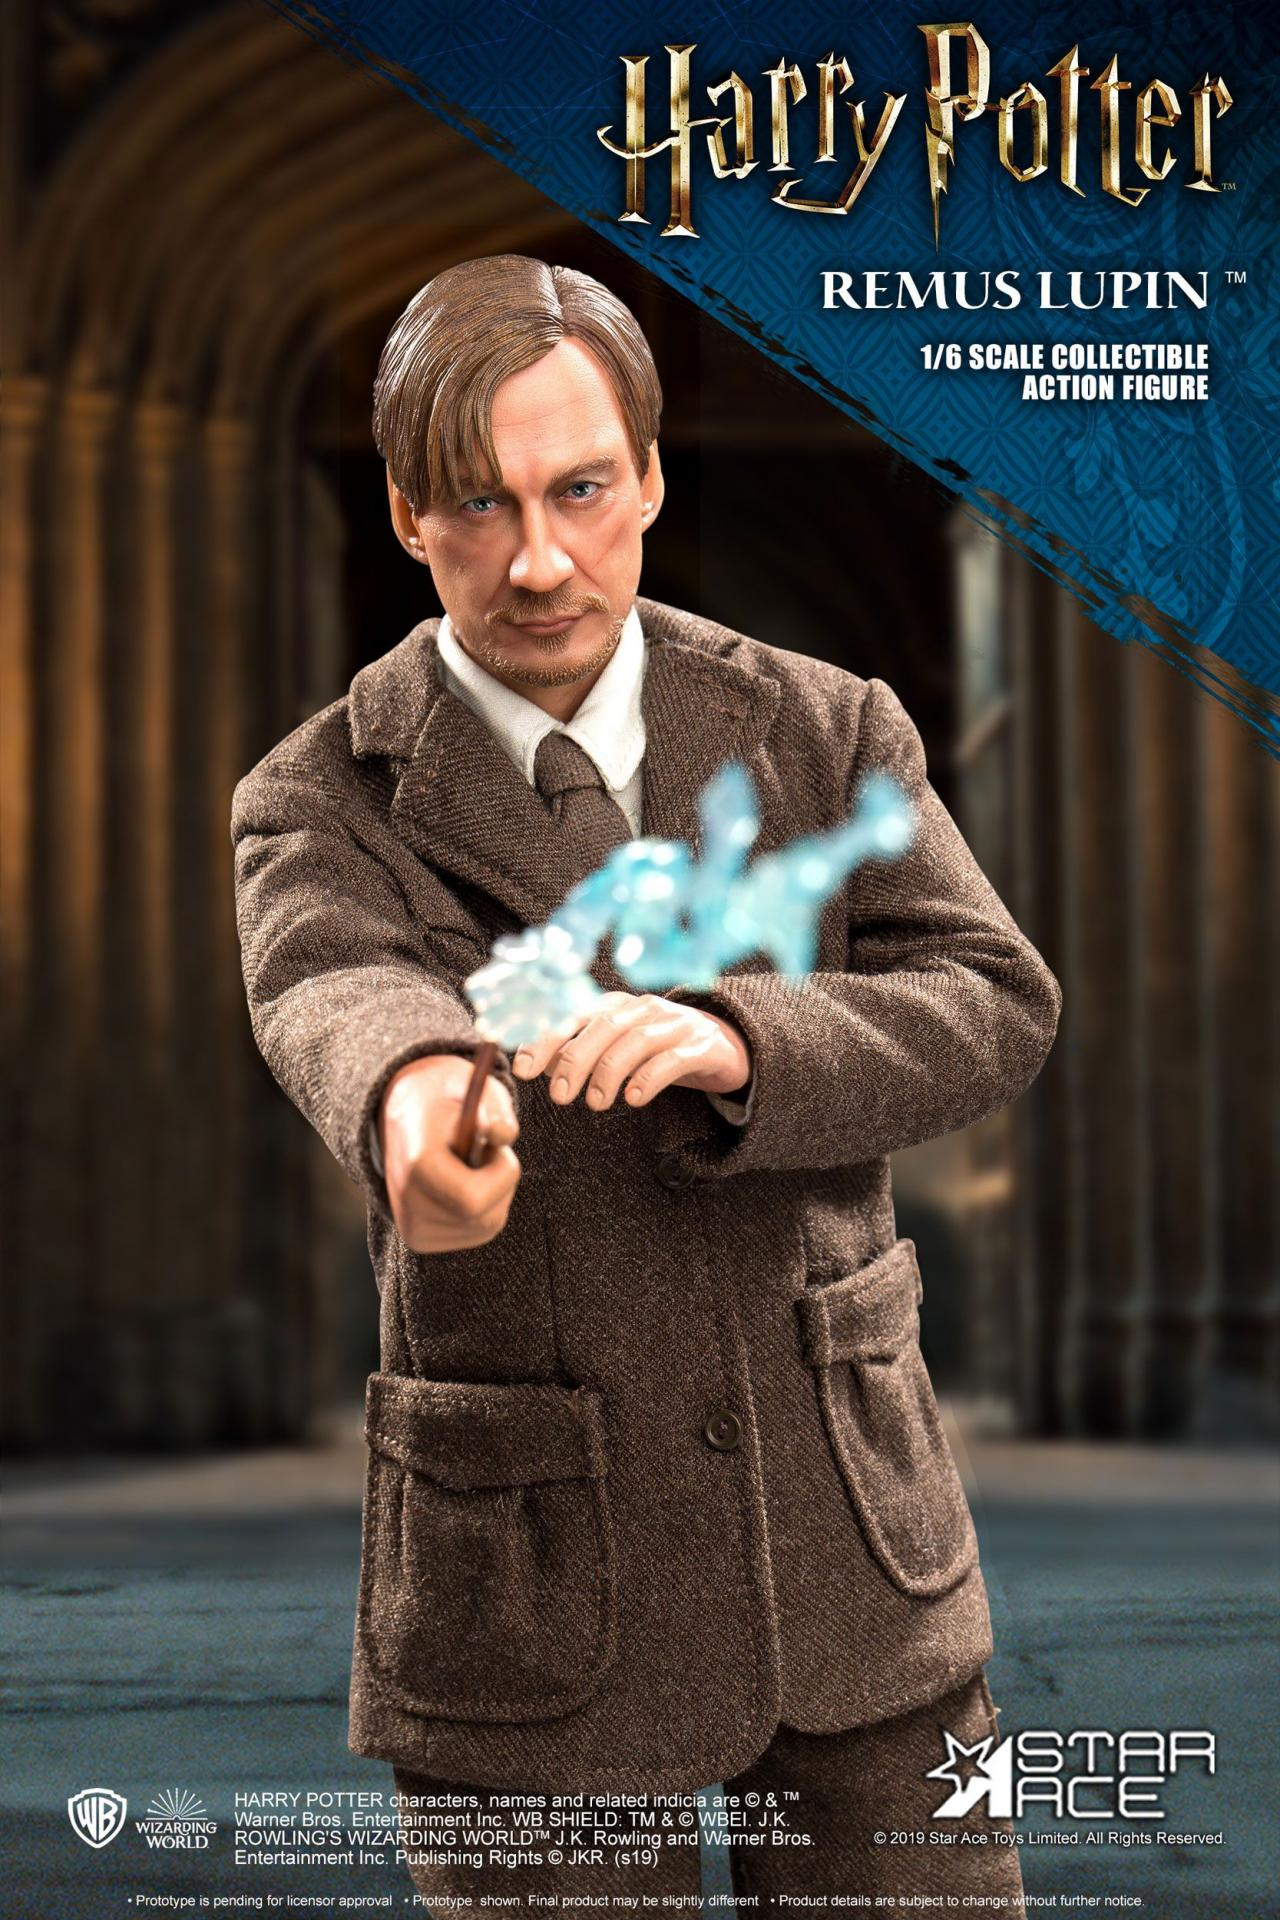 Harry potter my favourite movie figurine 16 remus lupin deluxe ver 30 cm02 5